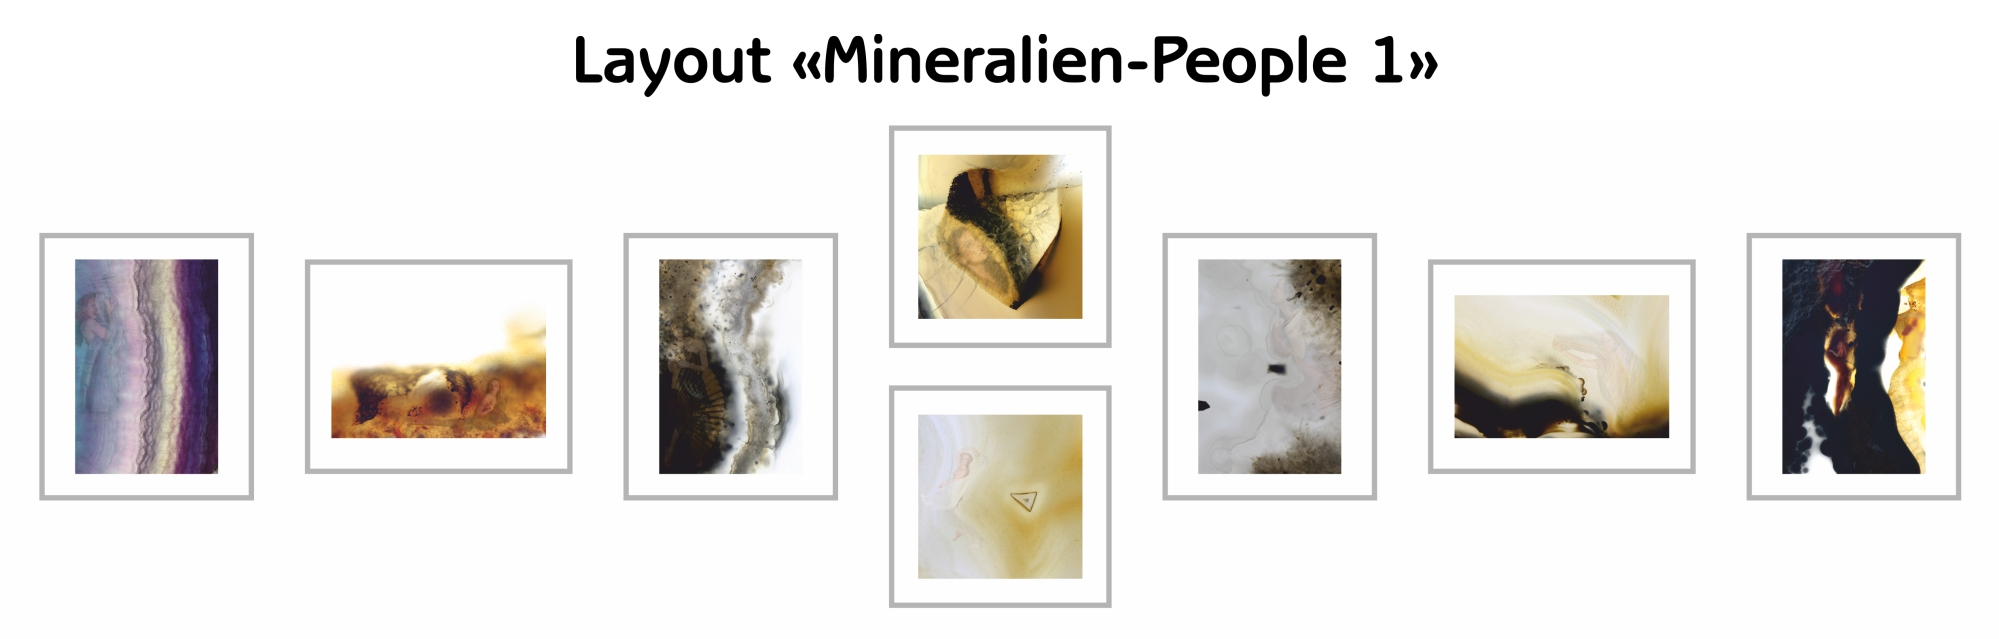 image-10217777-Layout-Mineralien-People-1-6512b.jpg